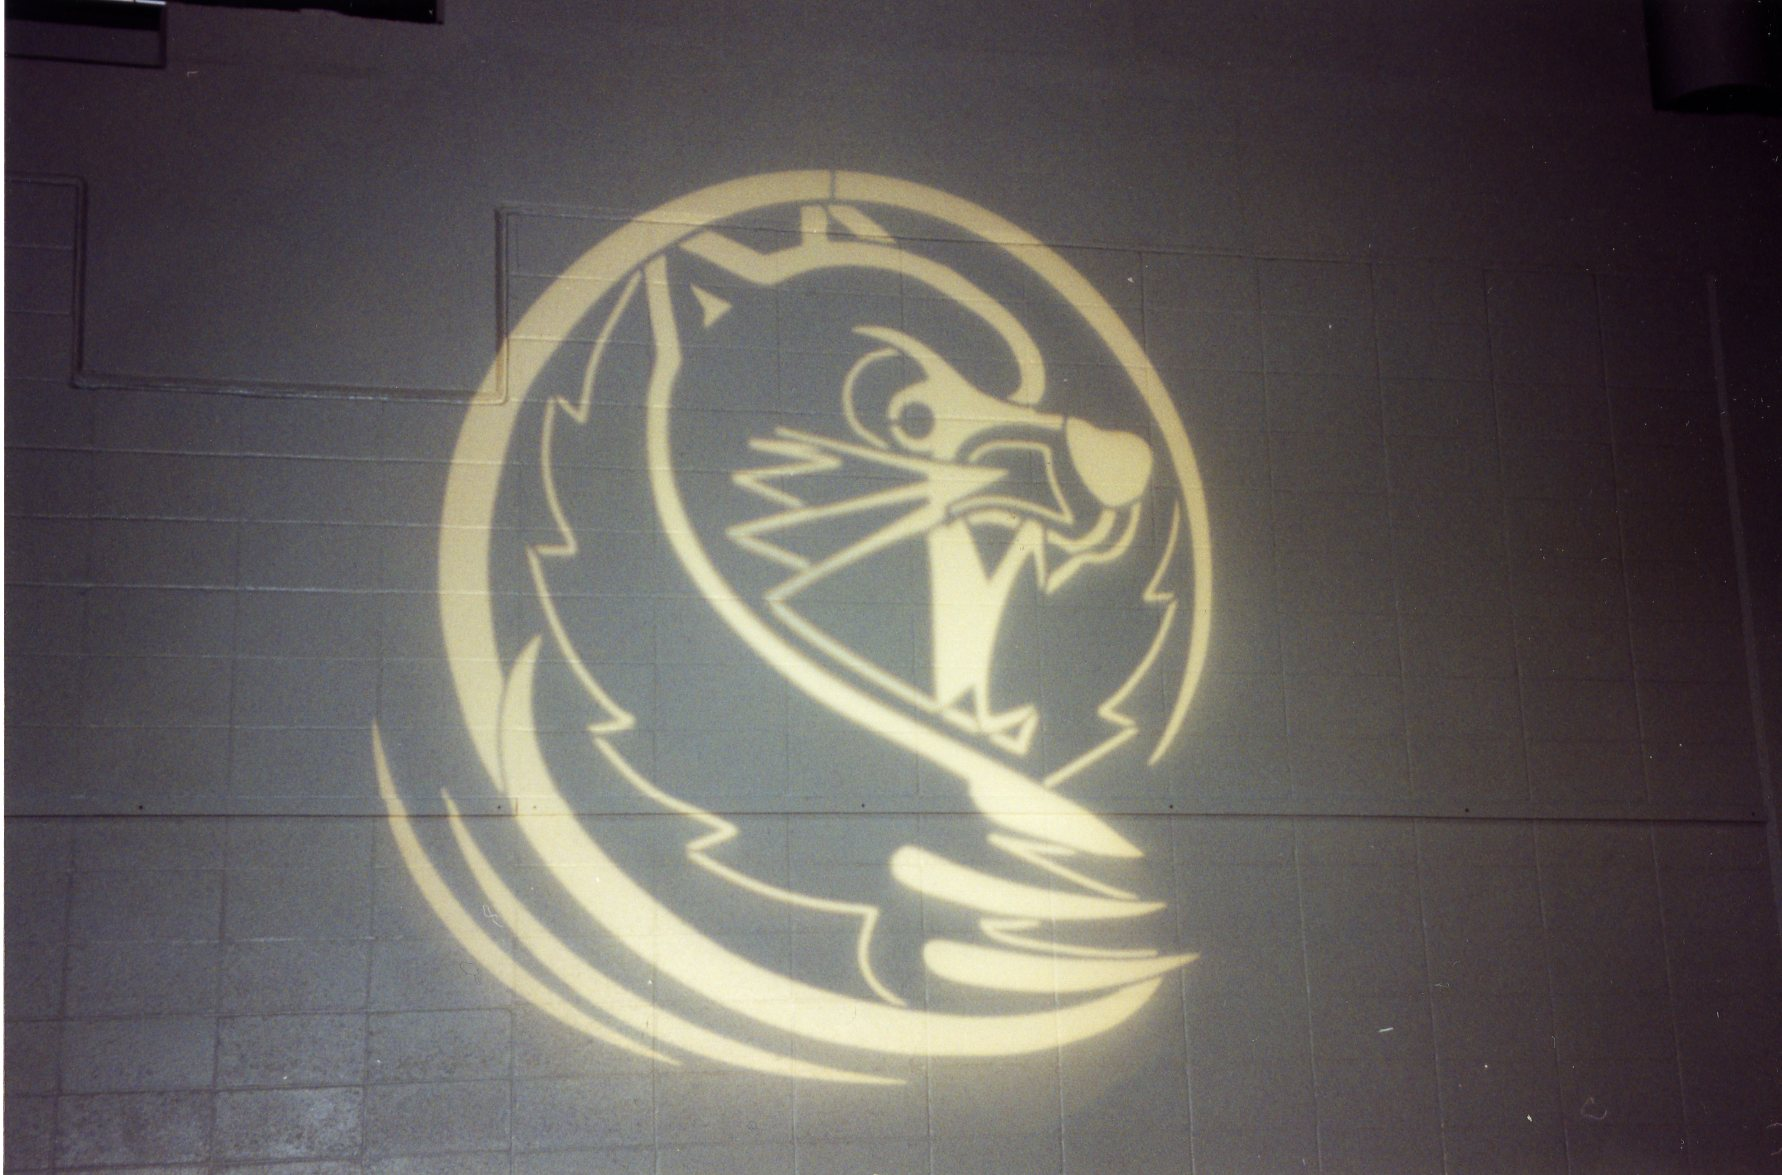 Archive shot of the Lander Bearcat logo on the wall of the arena